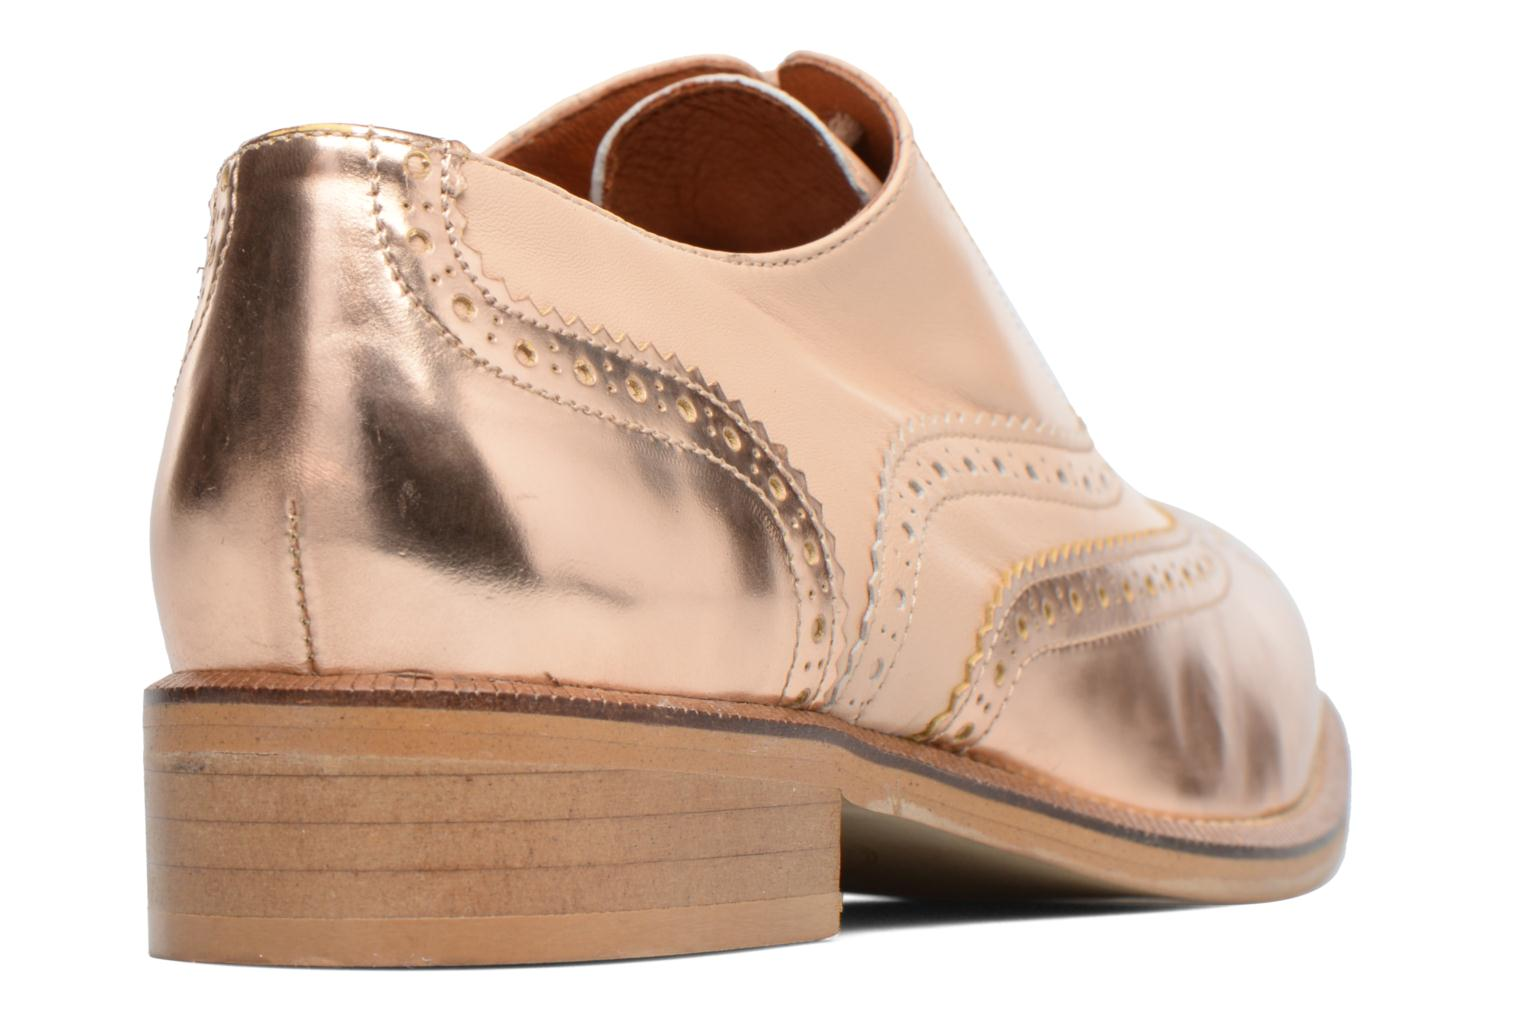 90's Girls Gang Chaussures à Lacets #5 Specch gold + Gutoby nude